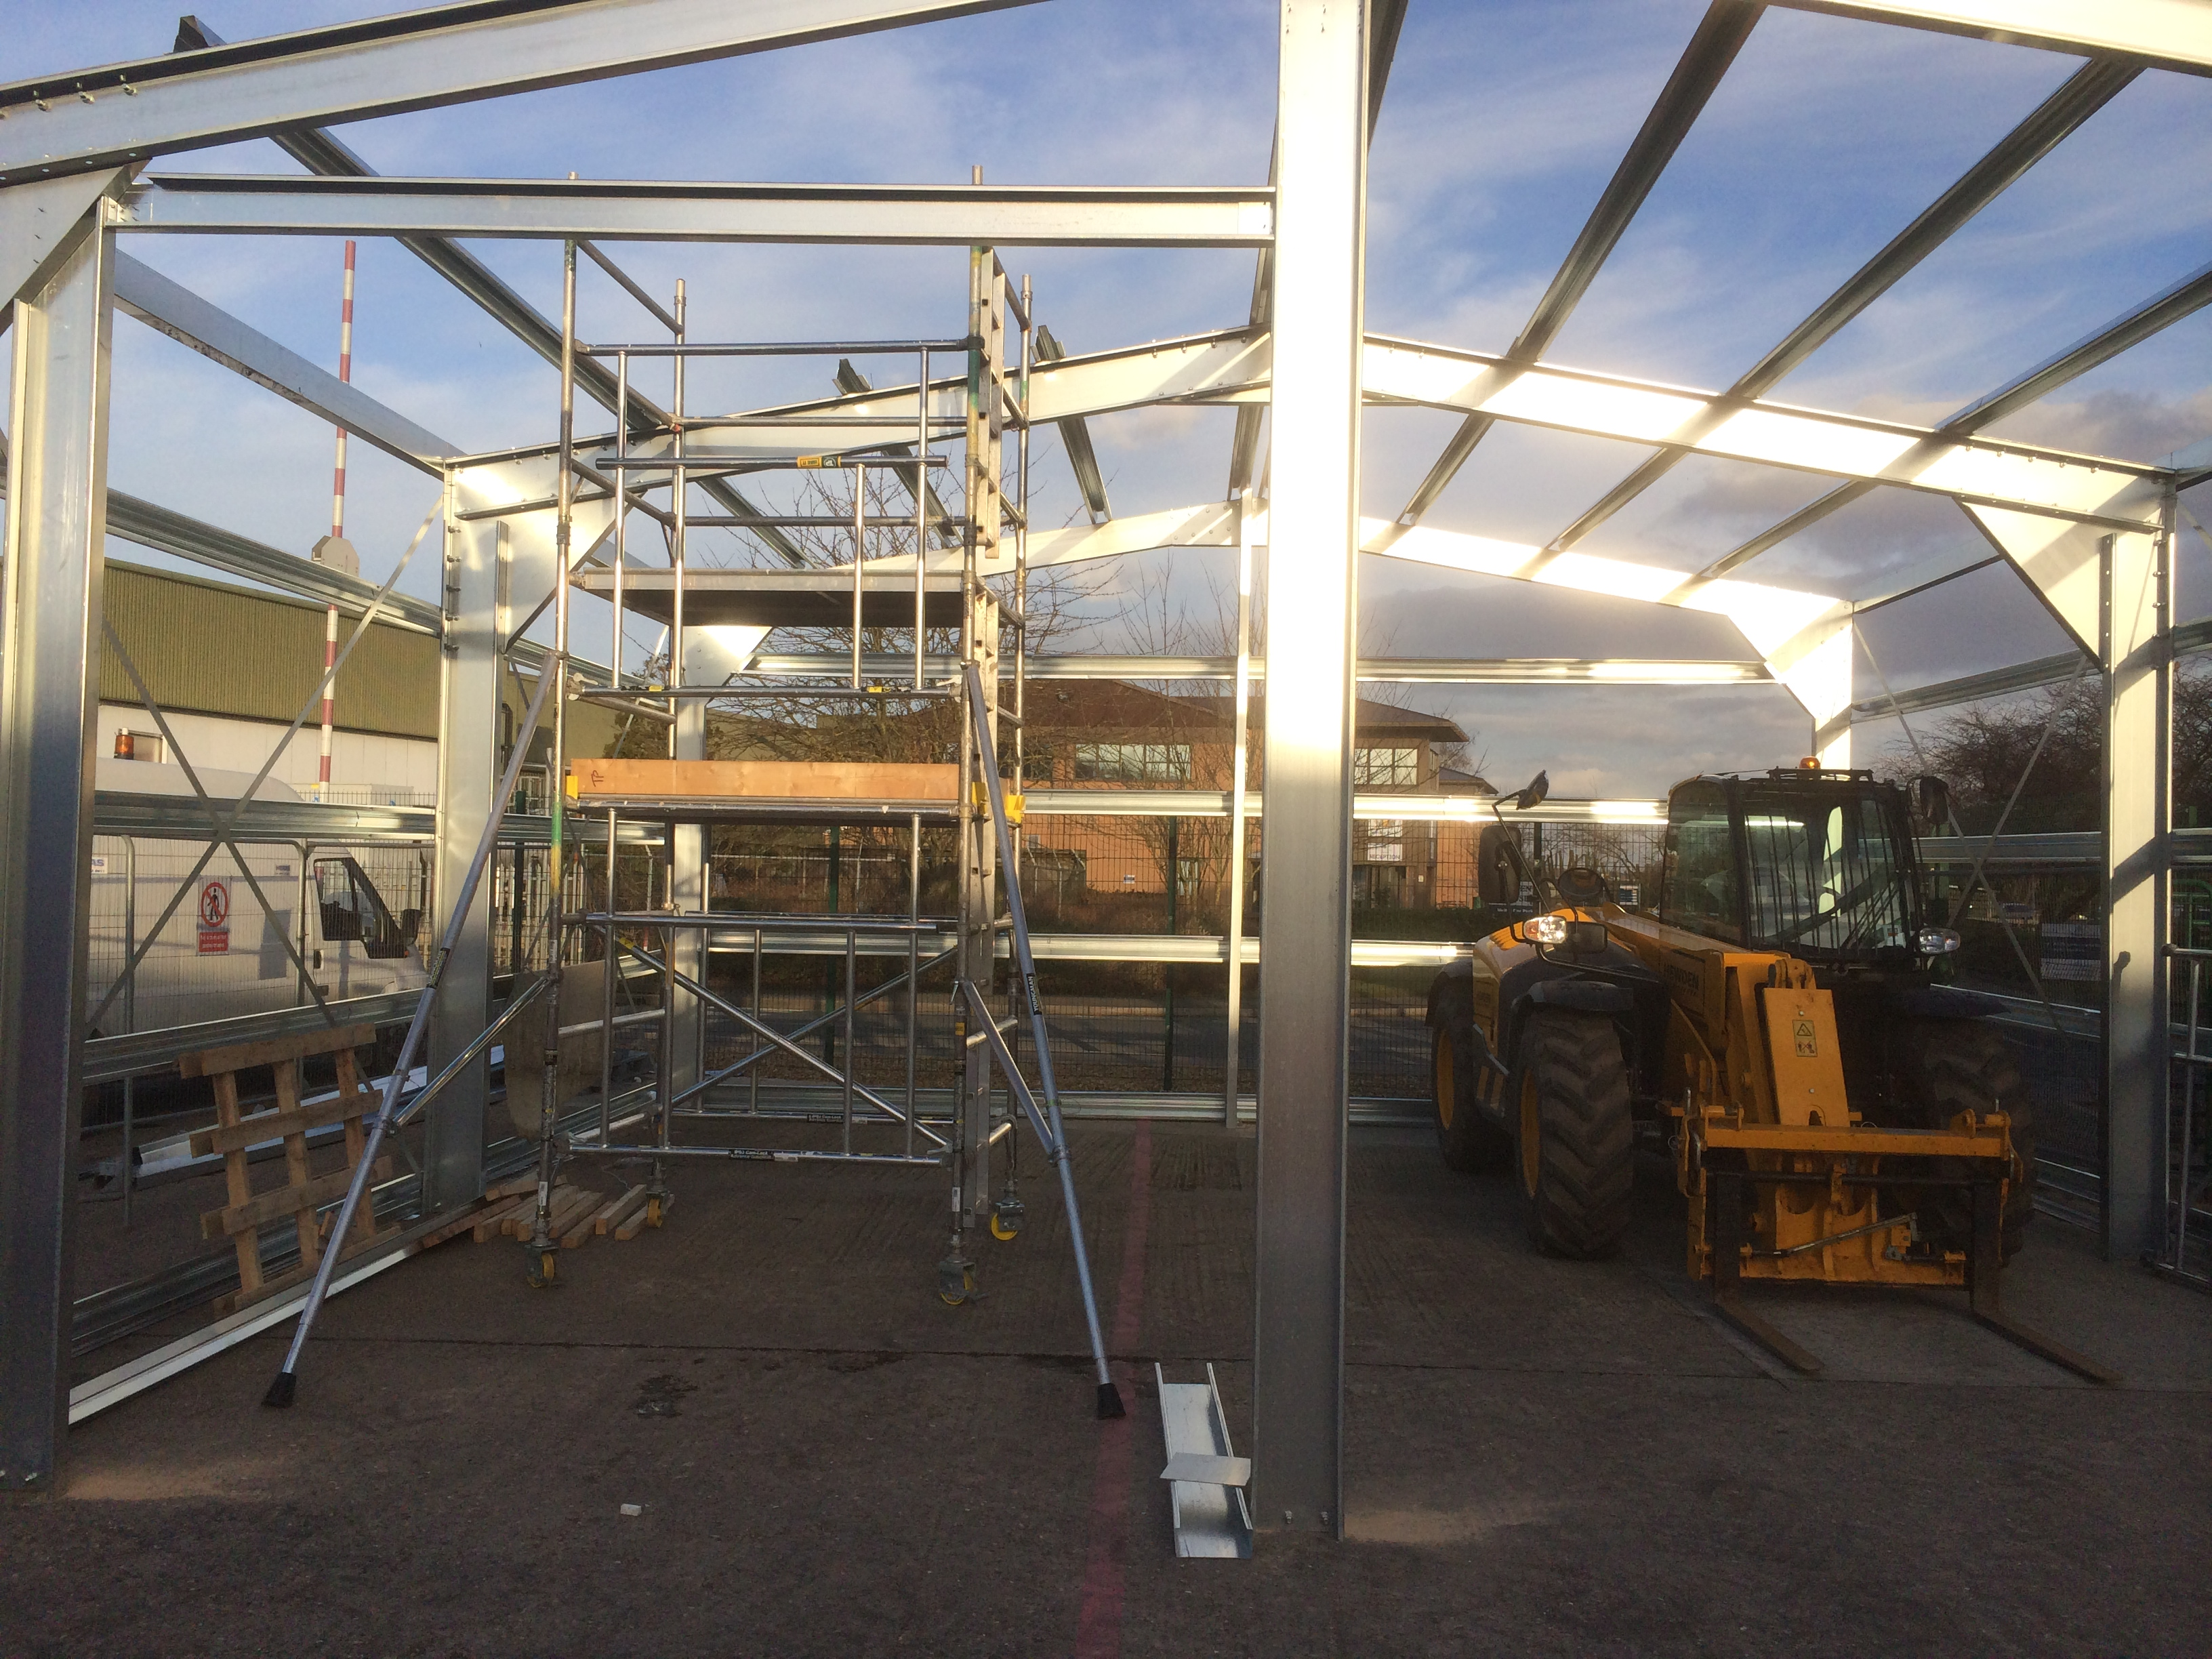 Do you need to carryout structural alterations to your existing steel building ? We are able to discuss and find a solution for the alterations you would like to carry out on your existing steel frame or portal framed buildings.